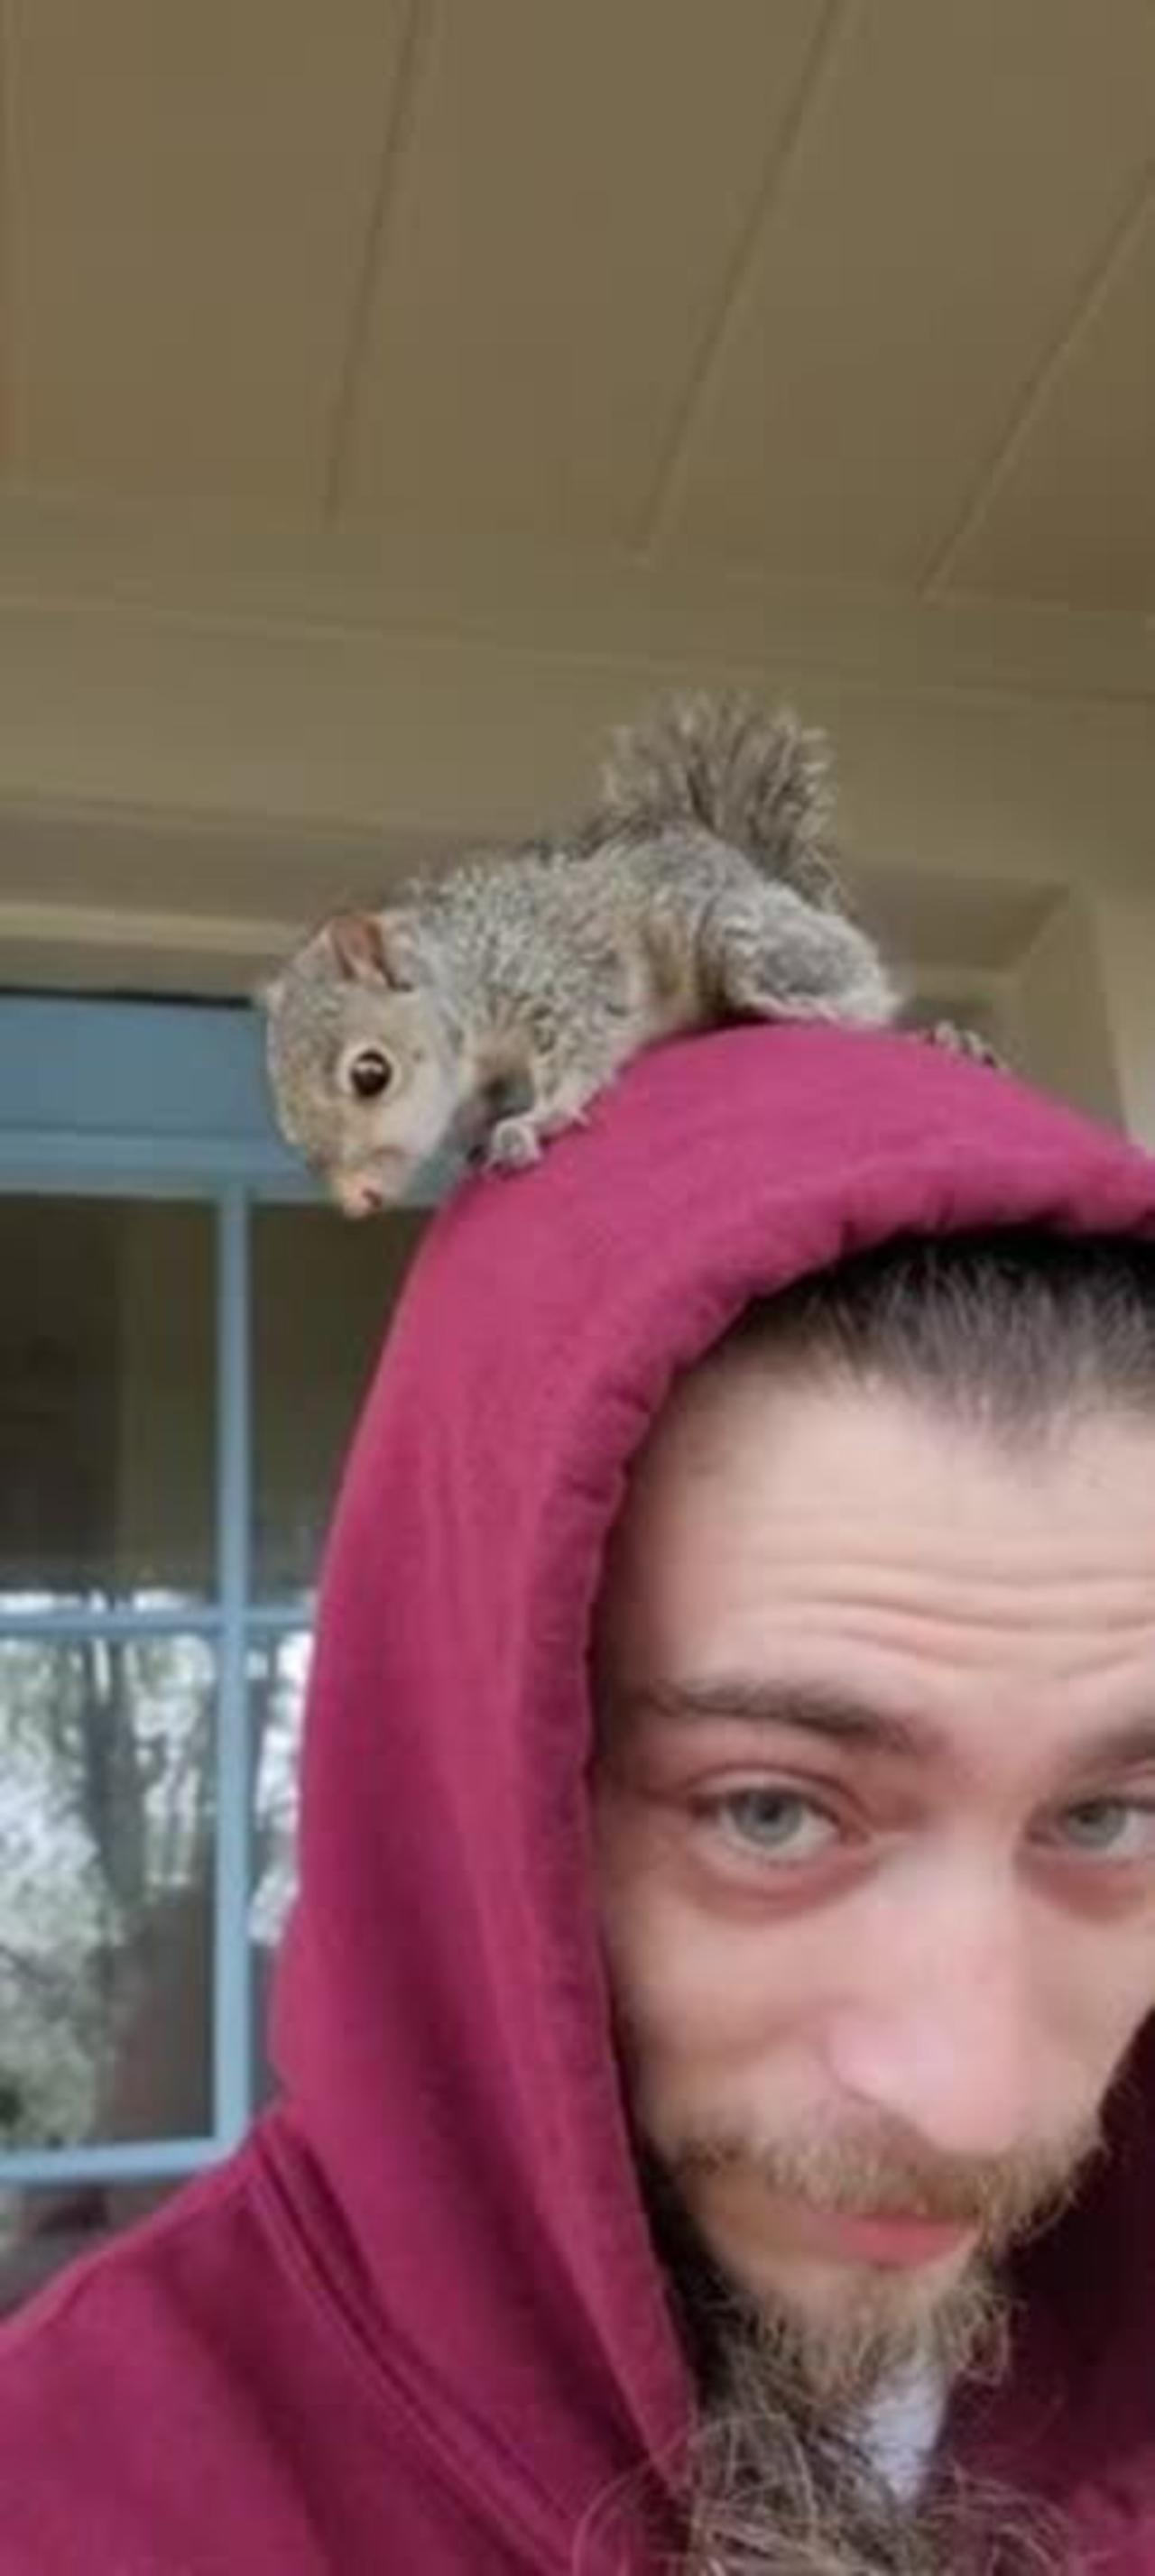 Squirrel Walks Up On Man's Body And Pets On His Head